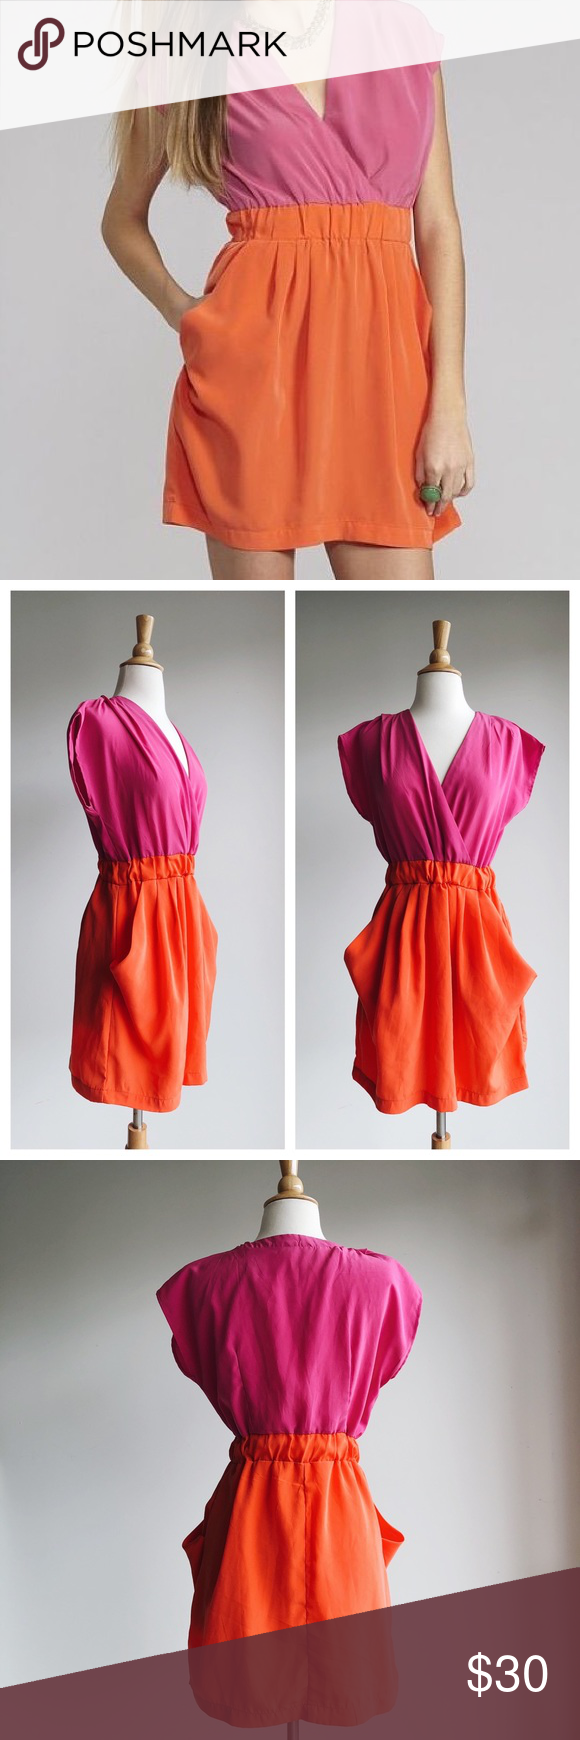 Bright pink dress for wedding guest  Gianni Bini Bright Pink and Orange Dress M Adorable summer dress